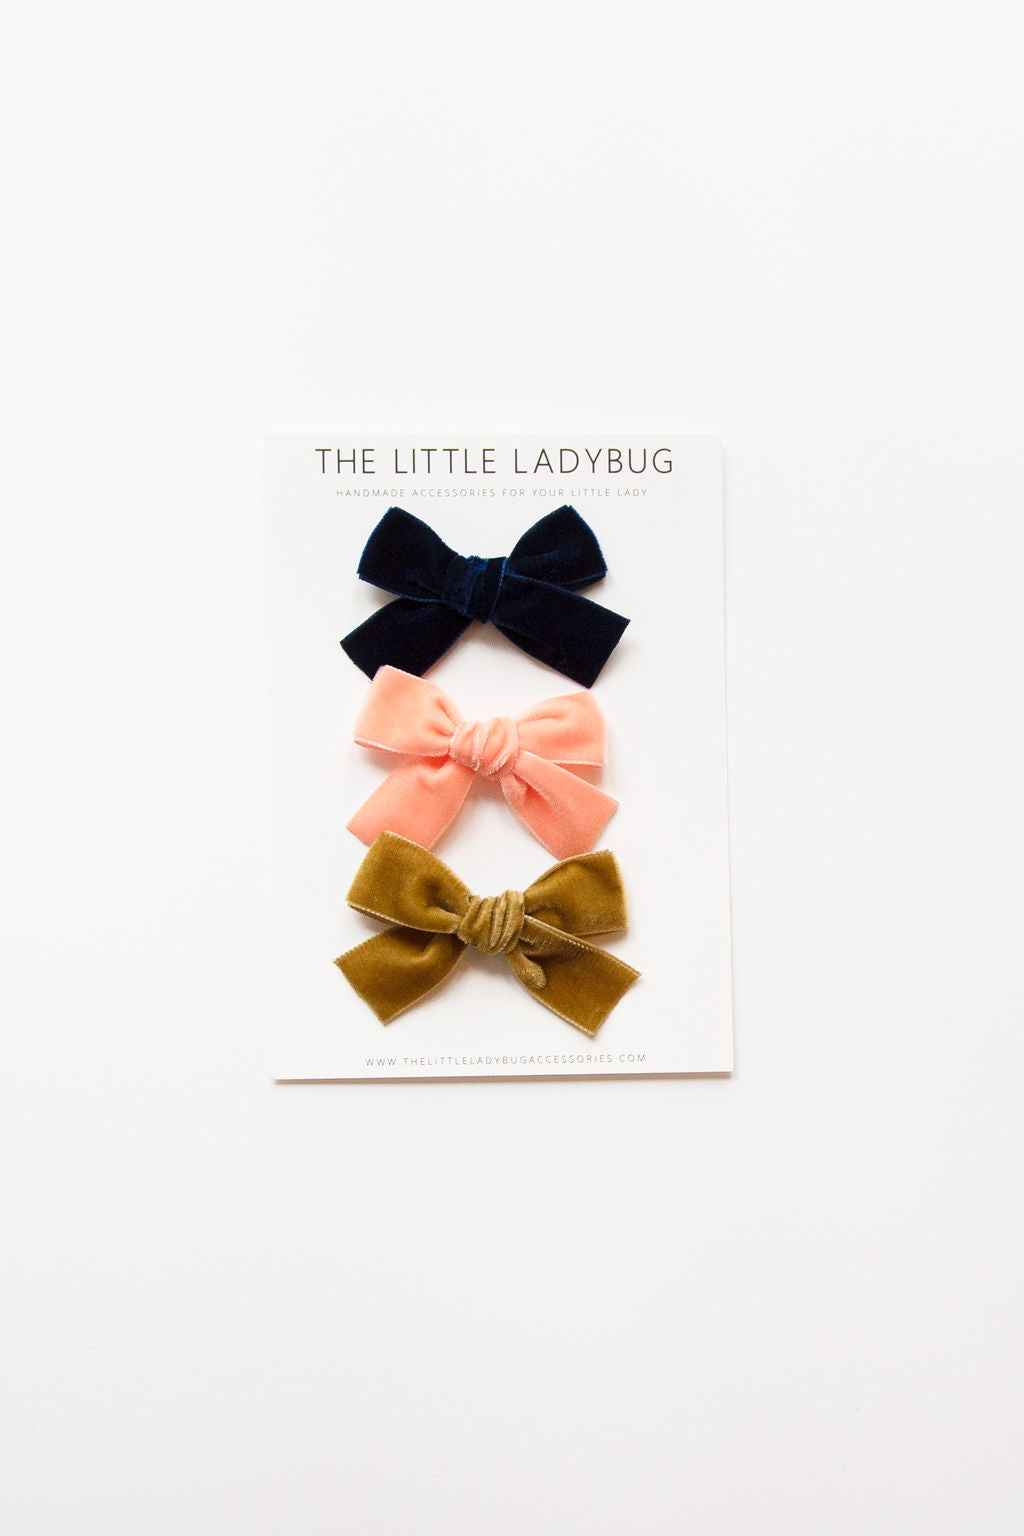 schoolgirl bow peaches bow pigtail bows pinwheel bow newborn bow knot bow big bow classic bows Navy and peach bow handtied bows